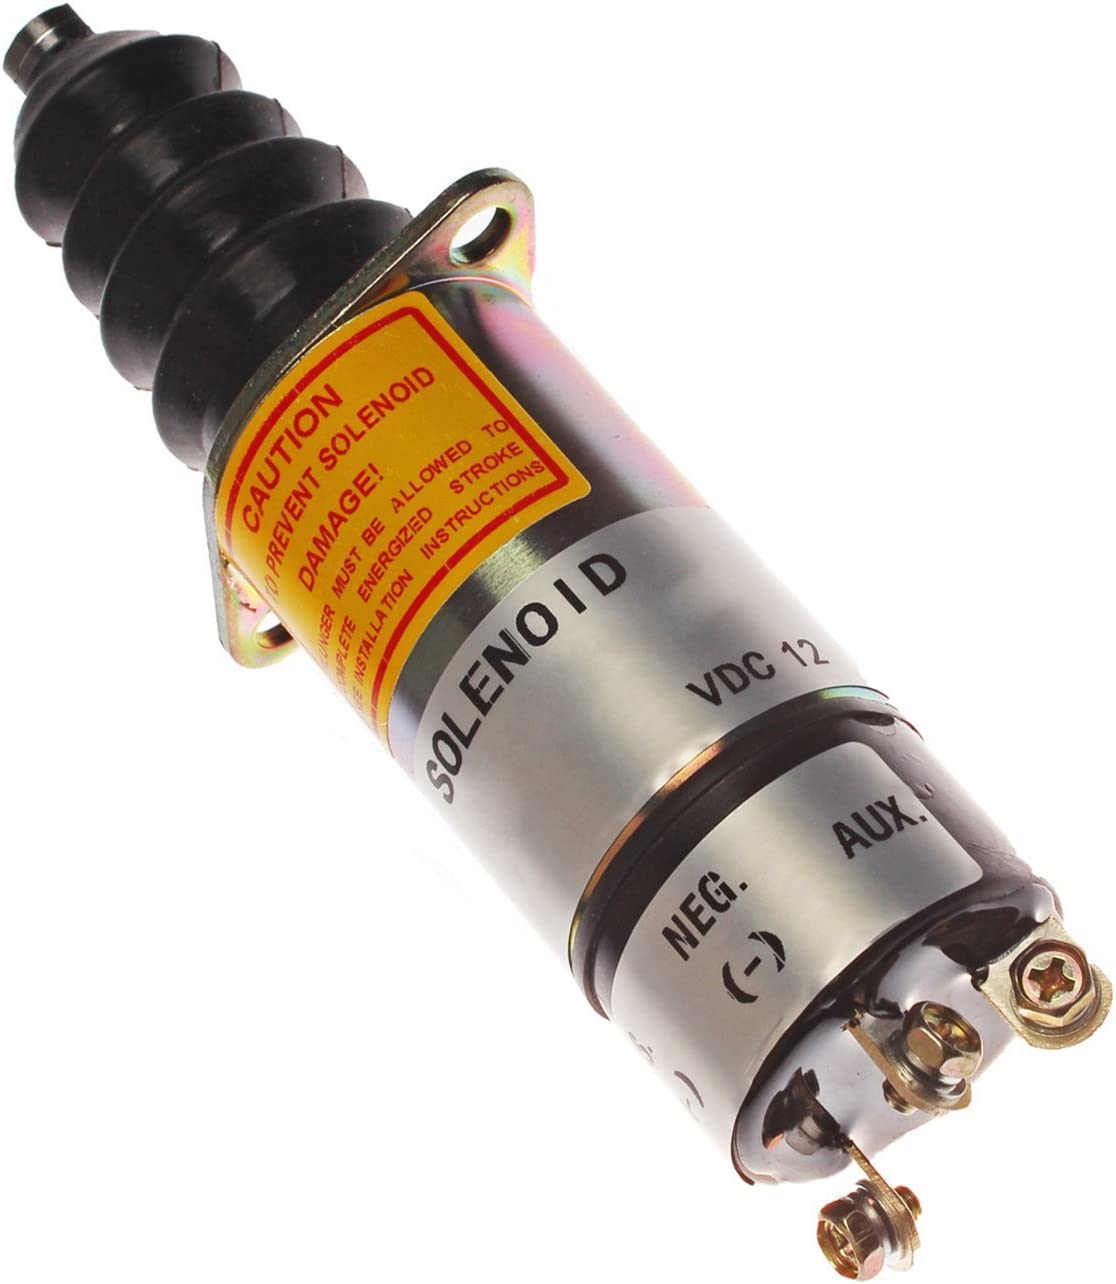 FridayParts Super sale period limited Fuel Same day shipping Solenoid 23041 for Westerbeke